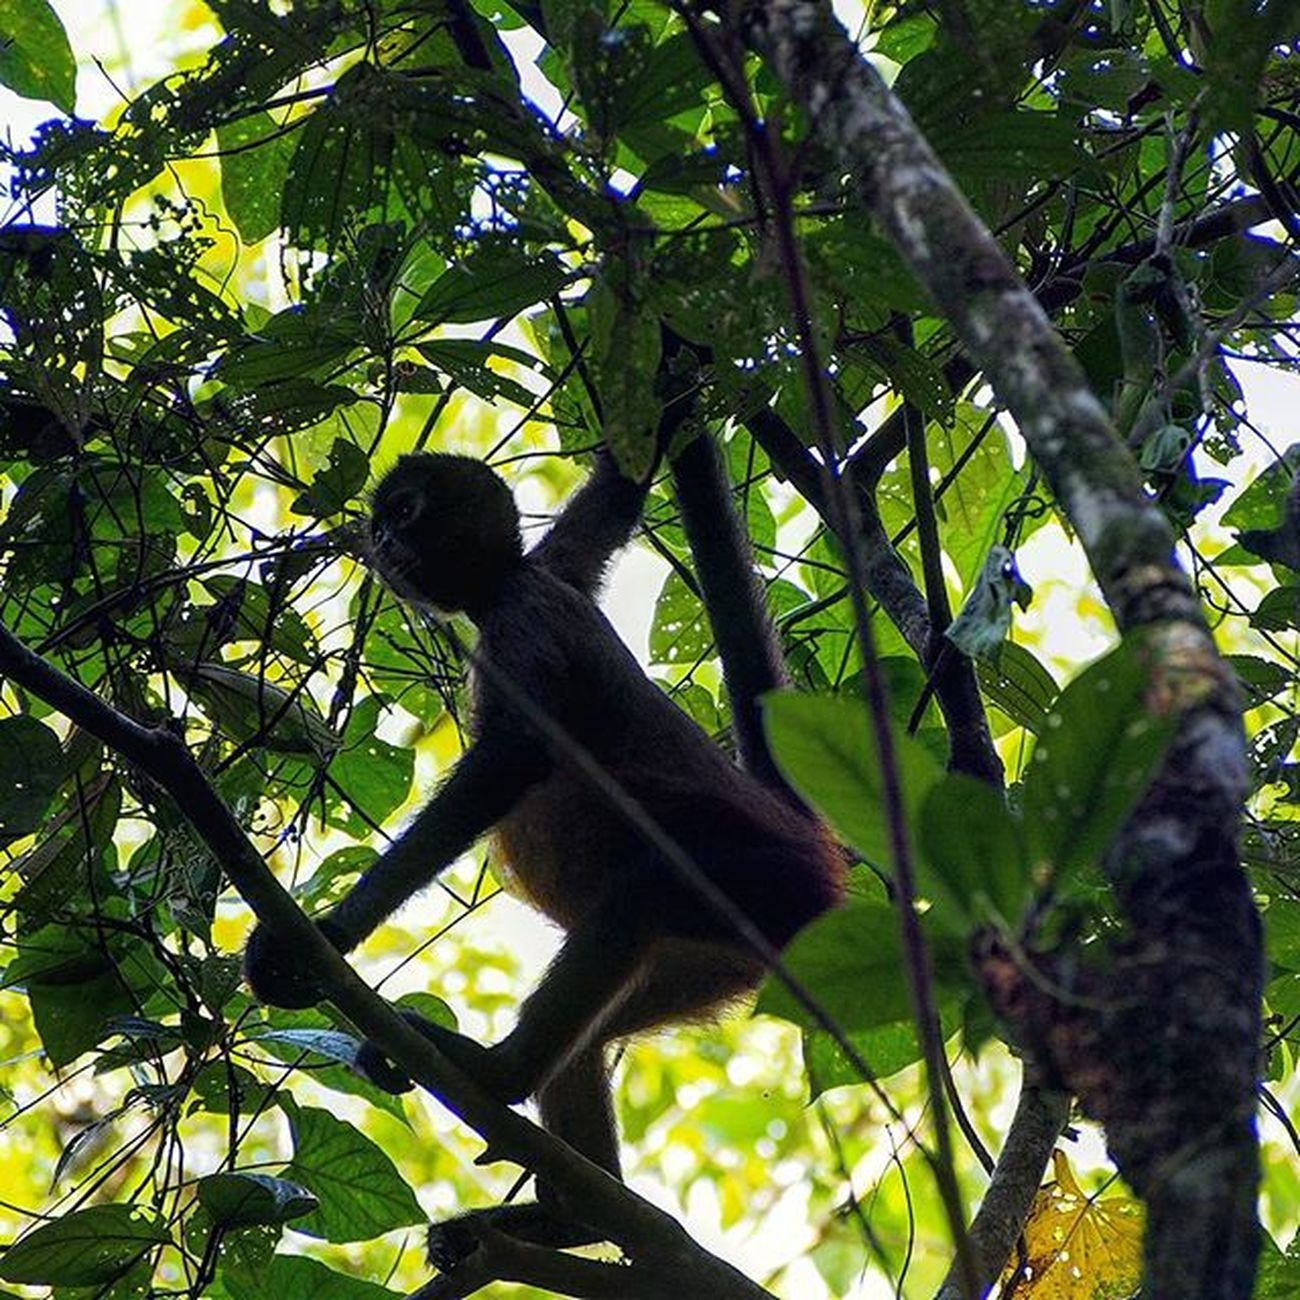 A howler monkey hanging around in a tree while we were on a nature walk in Tortugeuaro, Costa Rica _____________________________________ Howlermonkey Monkey Monkeyingaround Tortuguero  Tortugueronationalpark Wildlife_perfection Wildlifephotography Wild Wildlife Wildlife_seekers Naturephotography Naturelover Nature Naturelovers Costarica2015 Costaricagram Costarica Gadventures Travel Travelgram Instatravel Takemeback Olympus